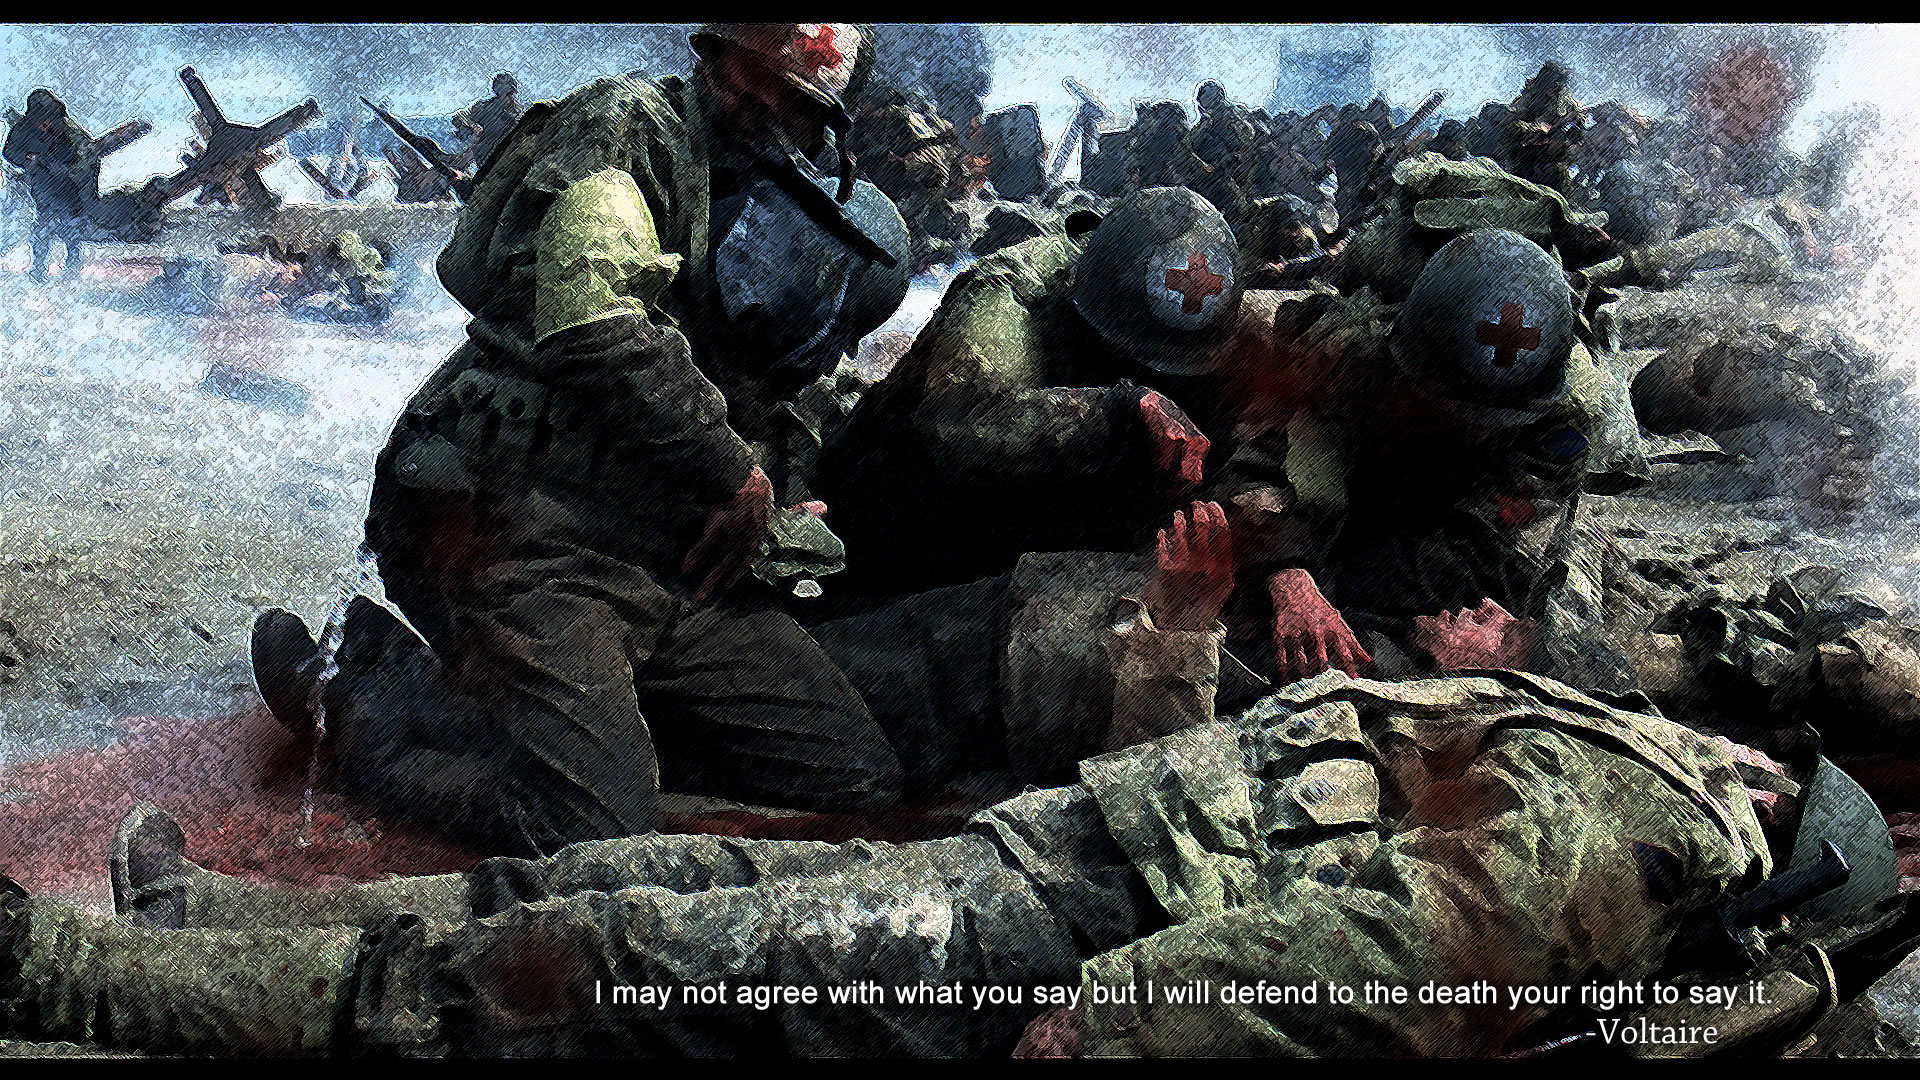 03_war_normandy_medic_tf2_wuote_wwii_art_dday_desktop_1920x1080_hd-wallpaper-705899.jpg